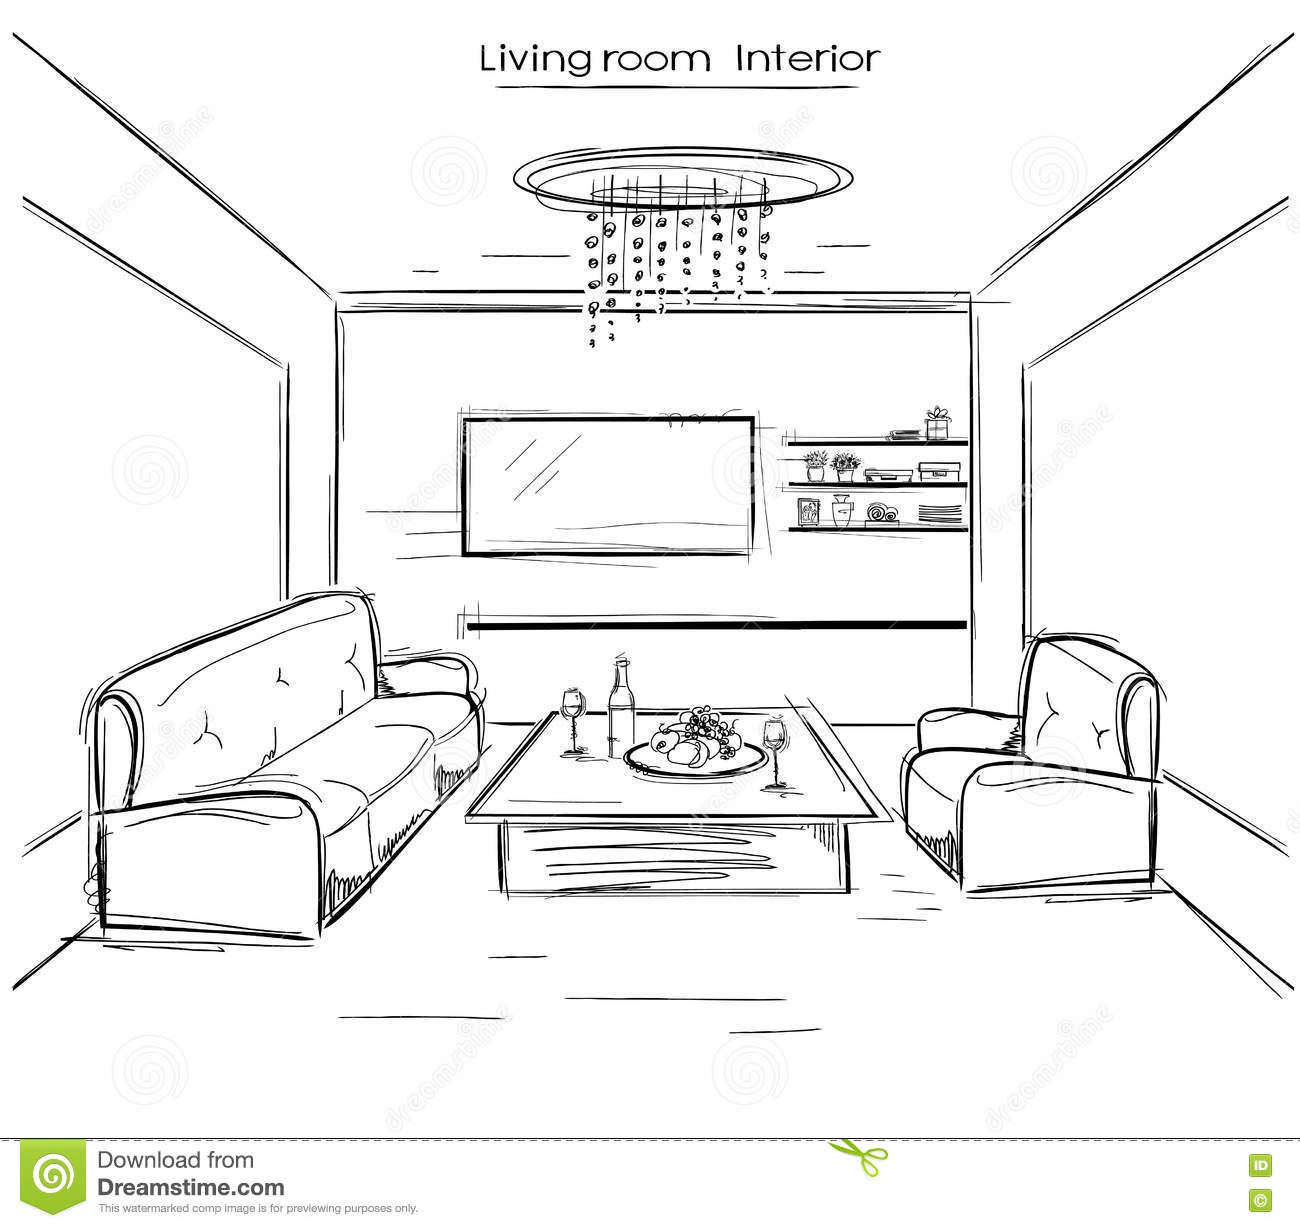 Living room interior vector black hand drawing for Simple drawing room images